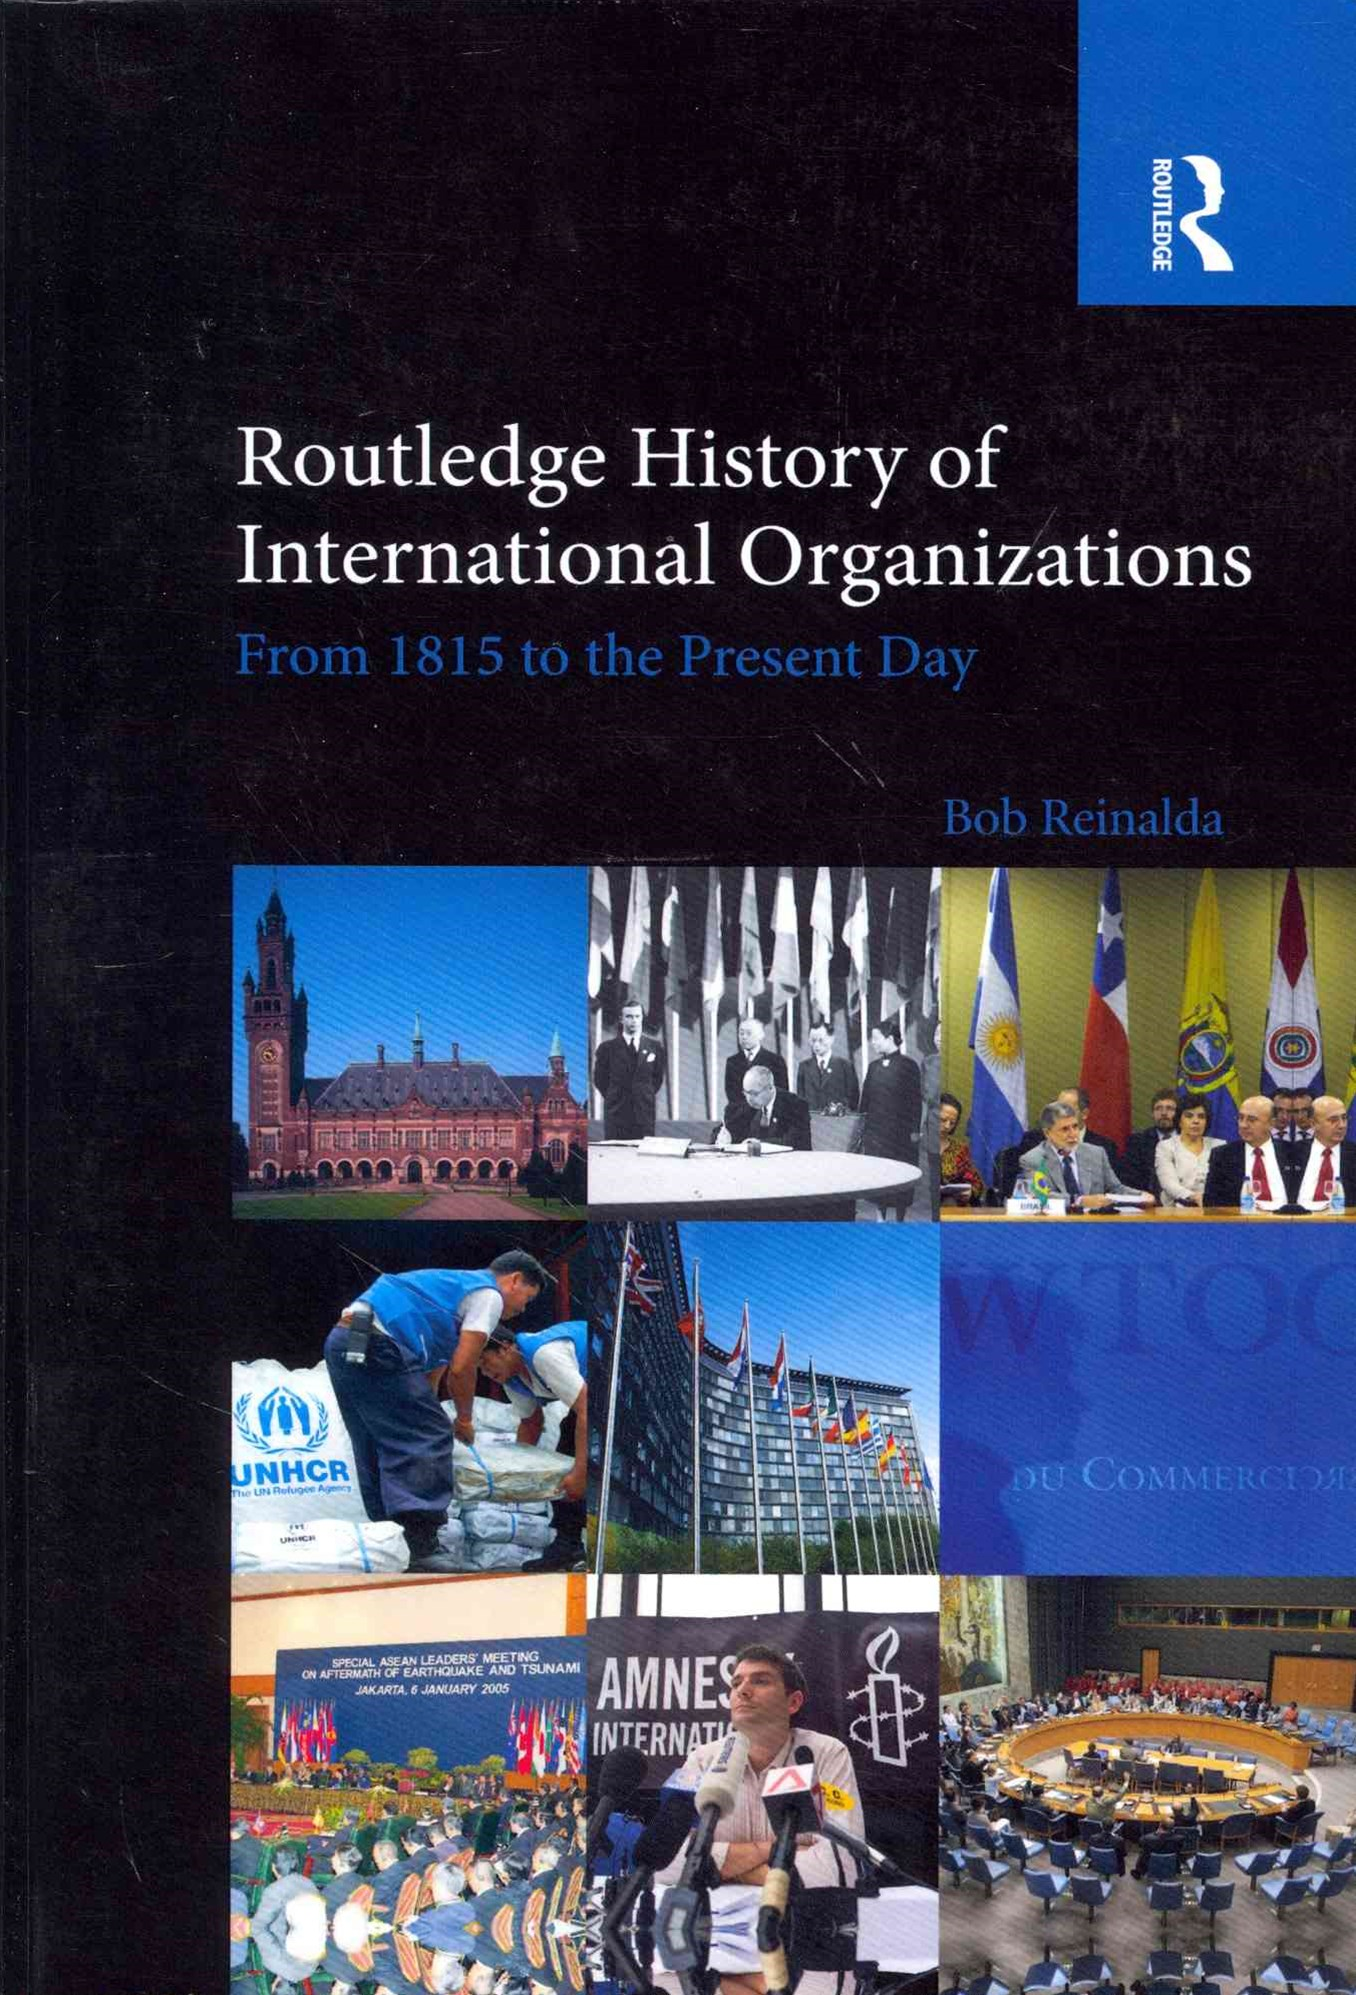 Routledge History of International Organizations